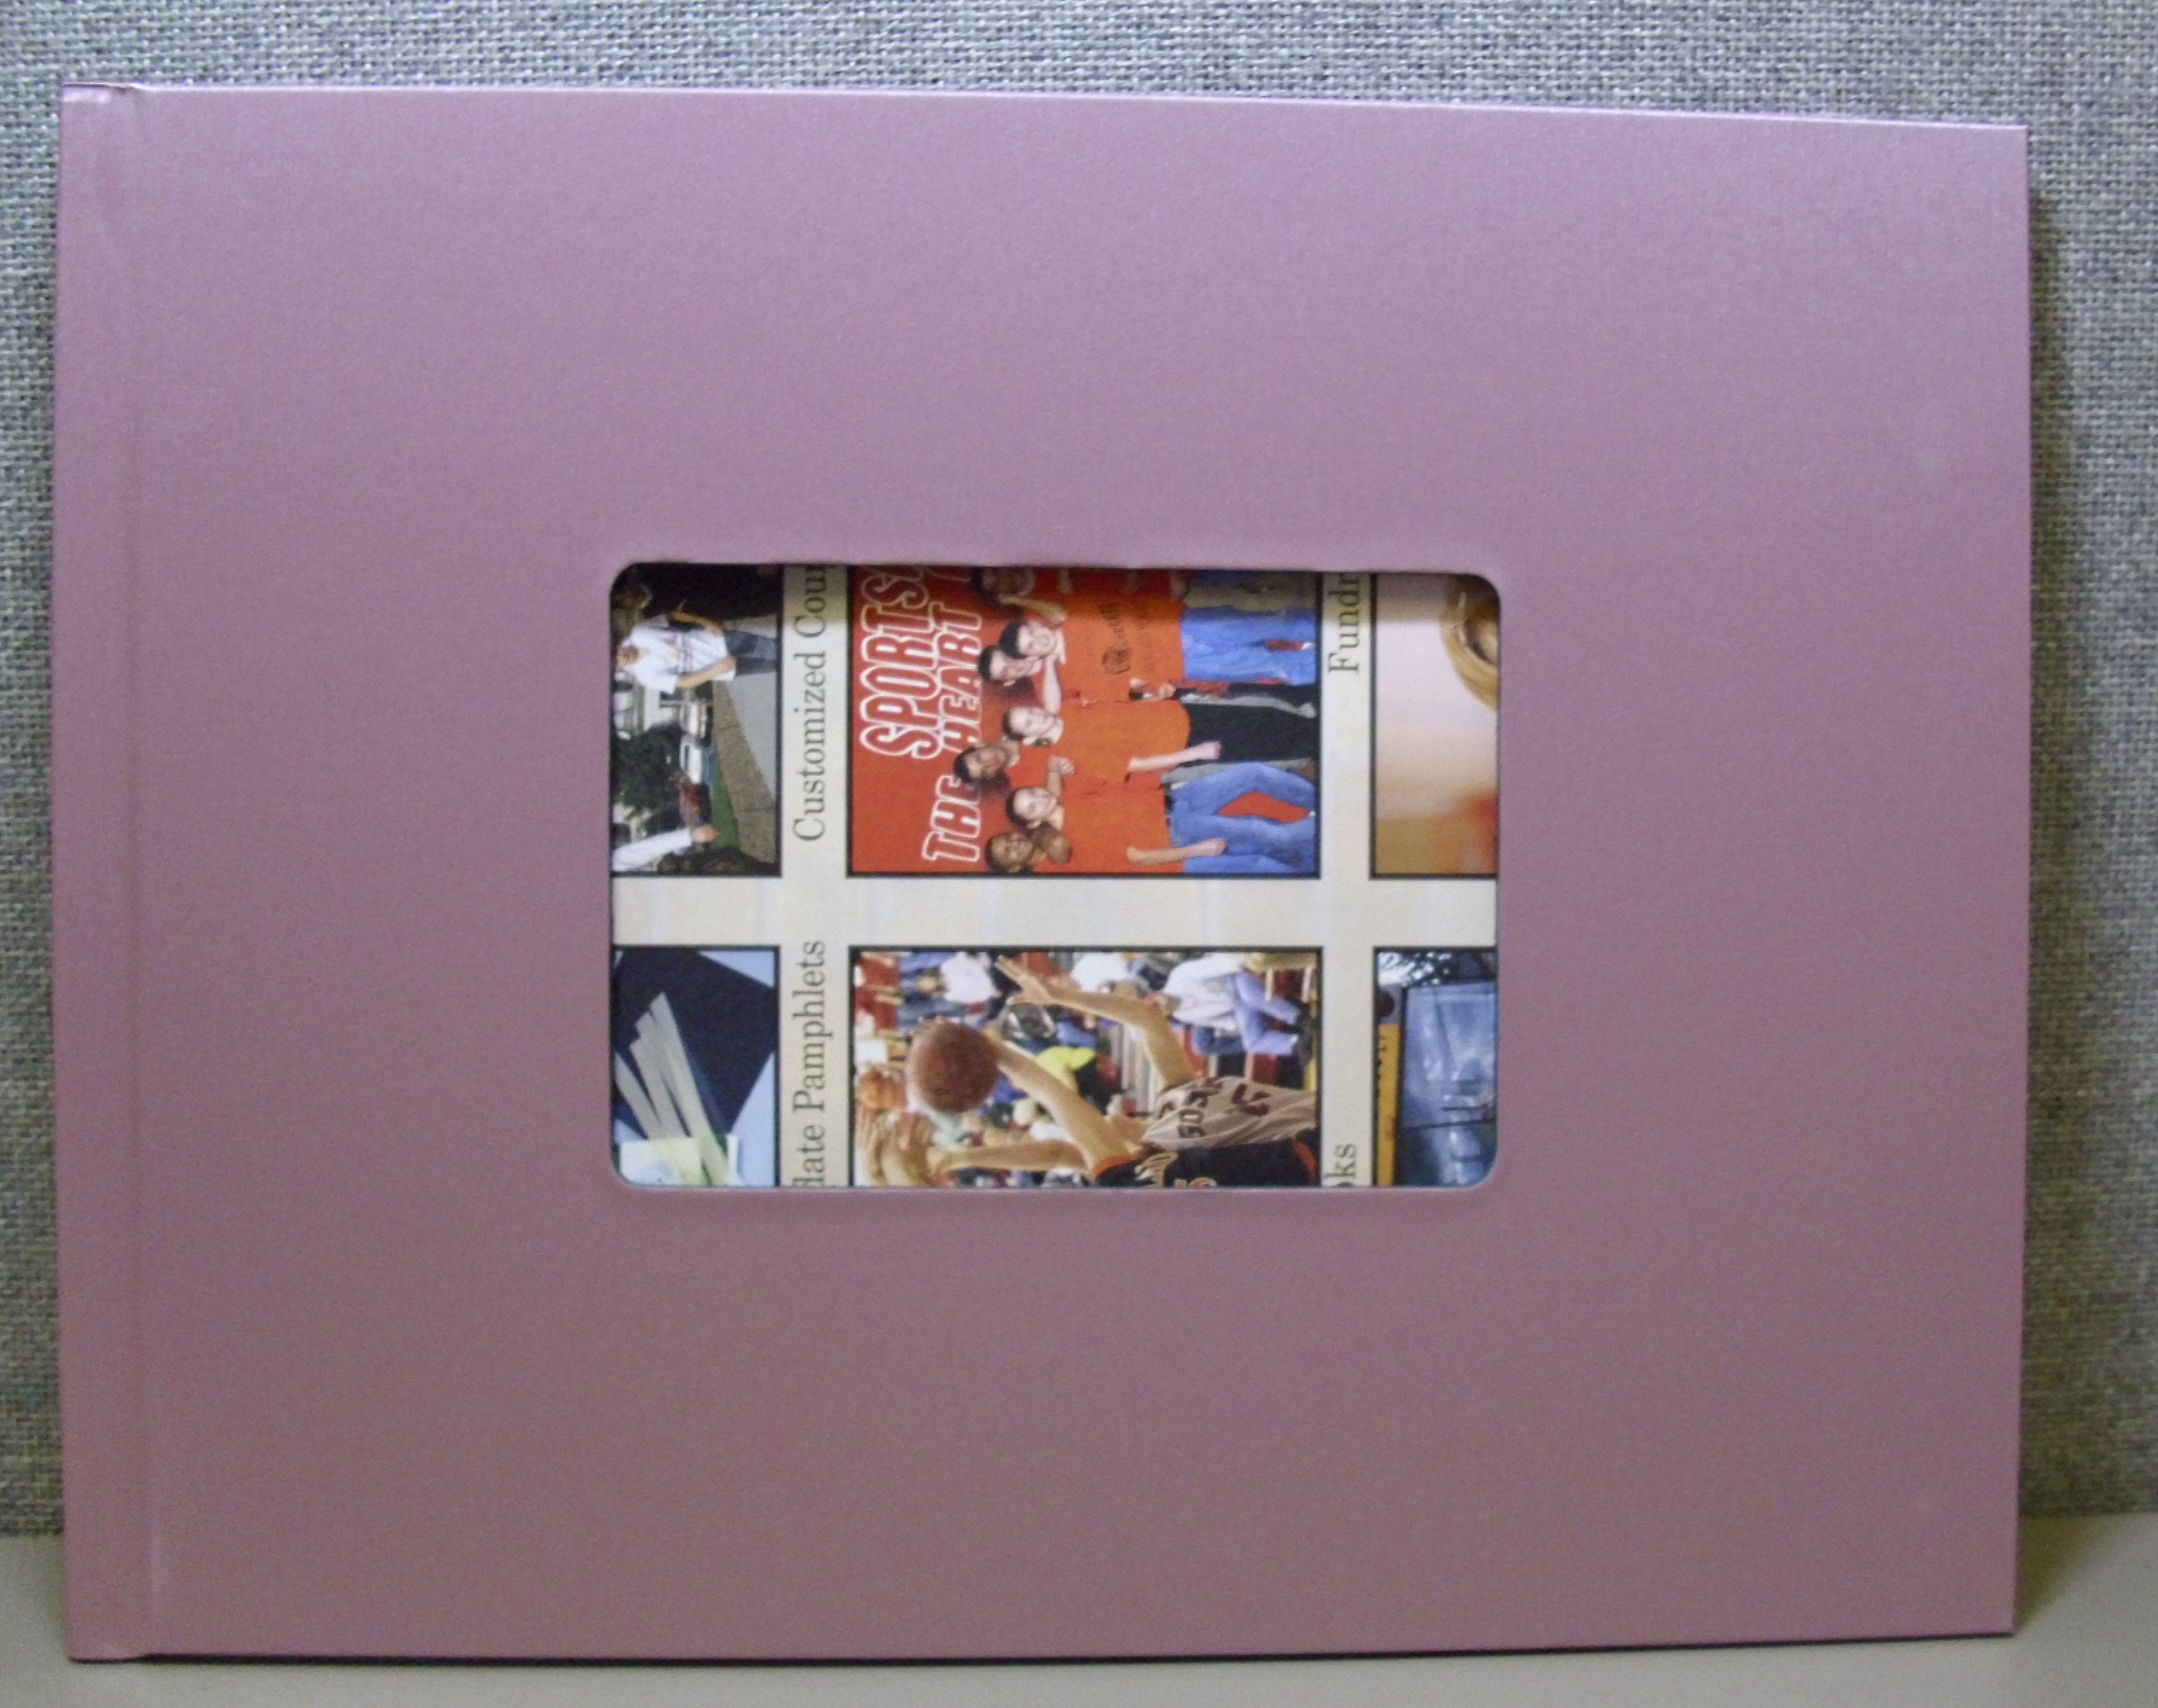 "10 Brushed Steel Pink Photobook, 8.5 x 11"" Landscape"